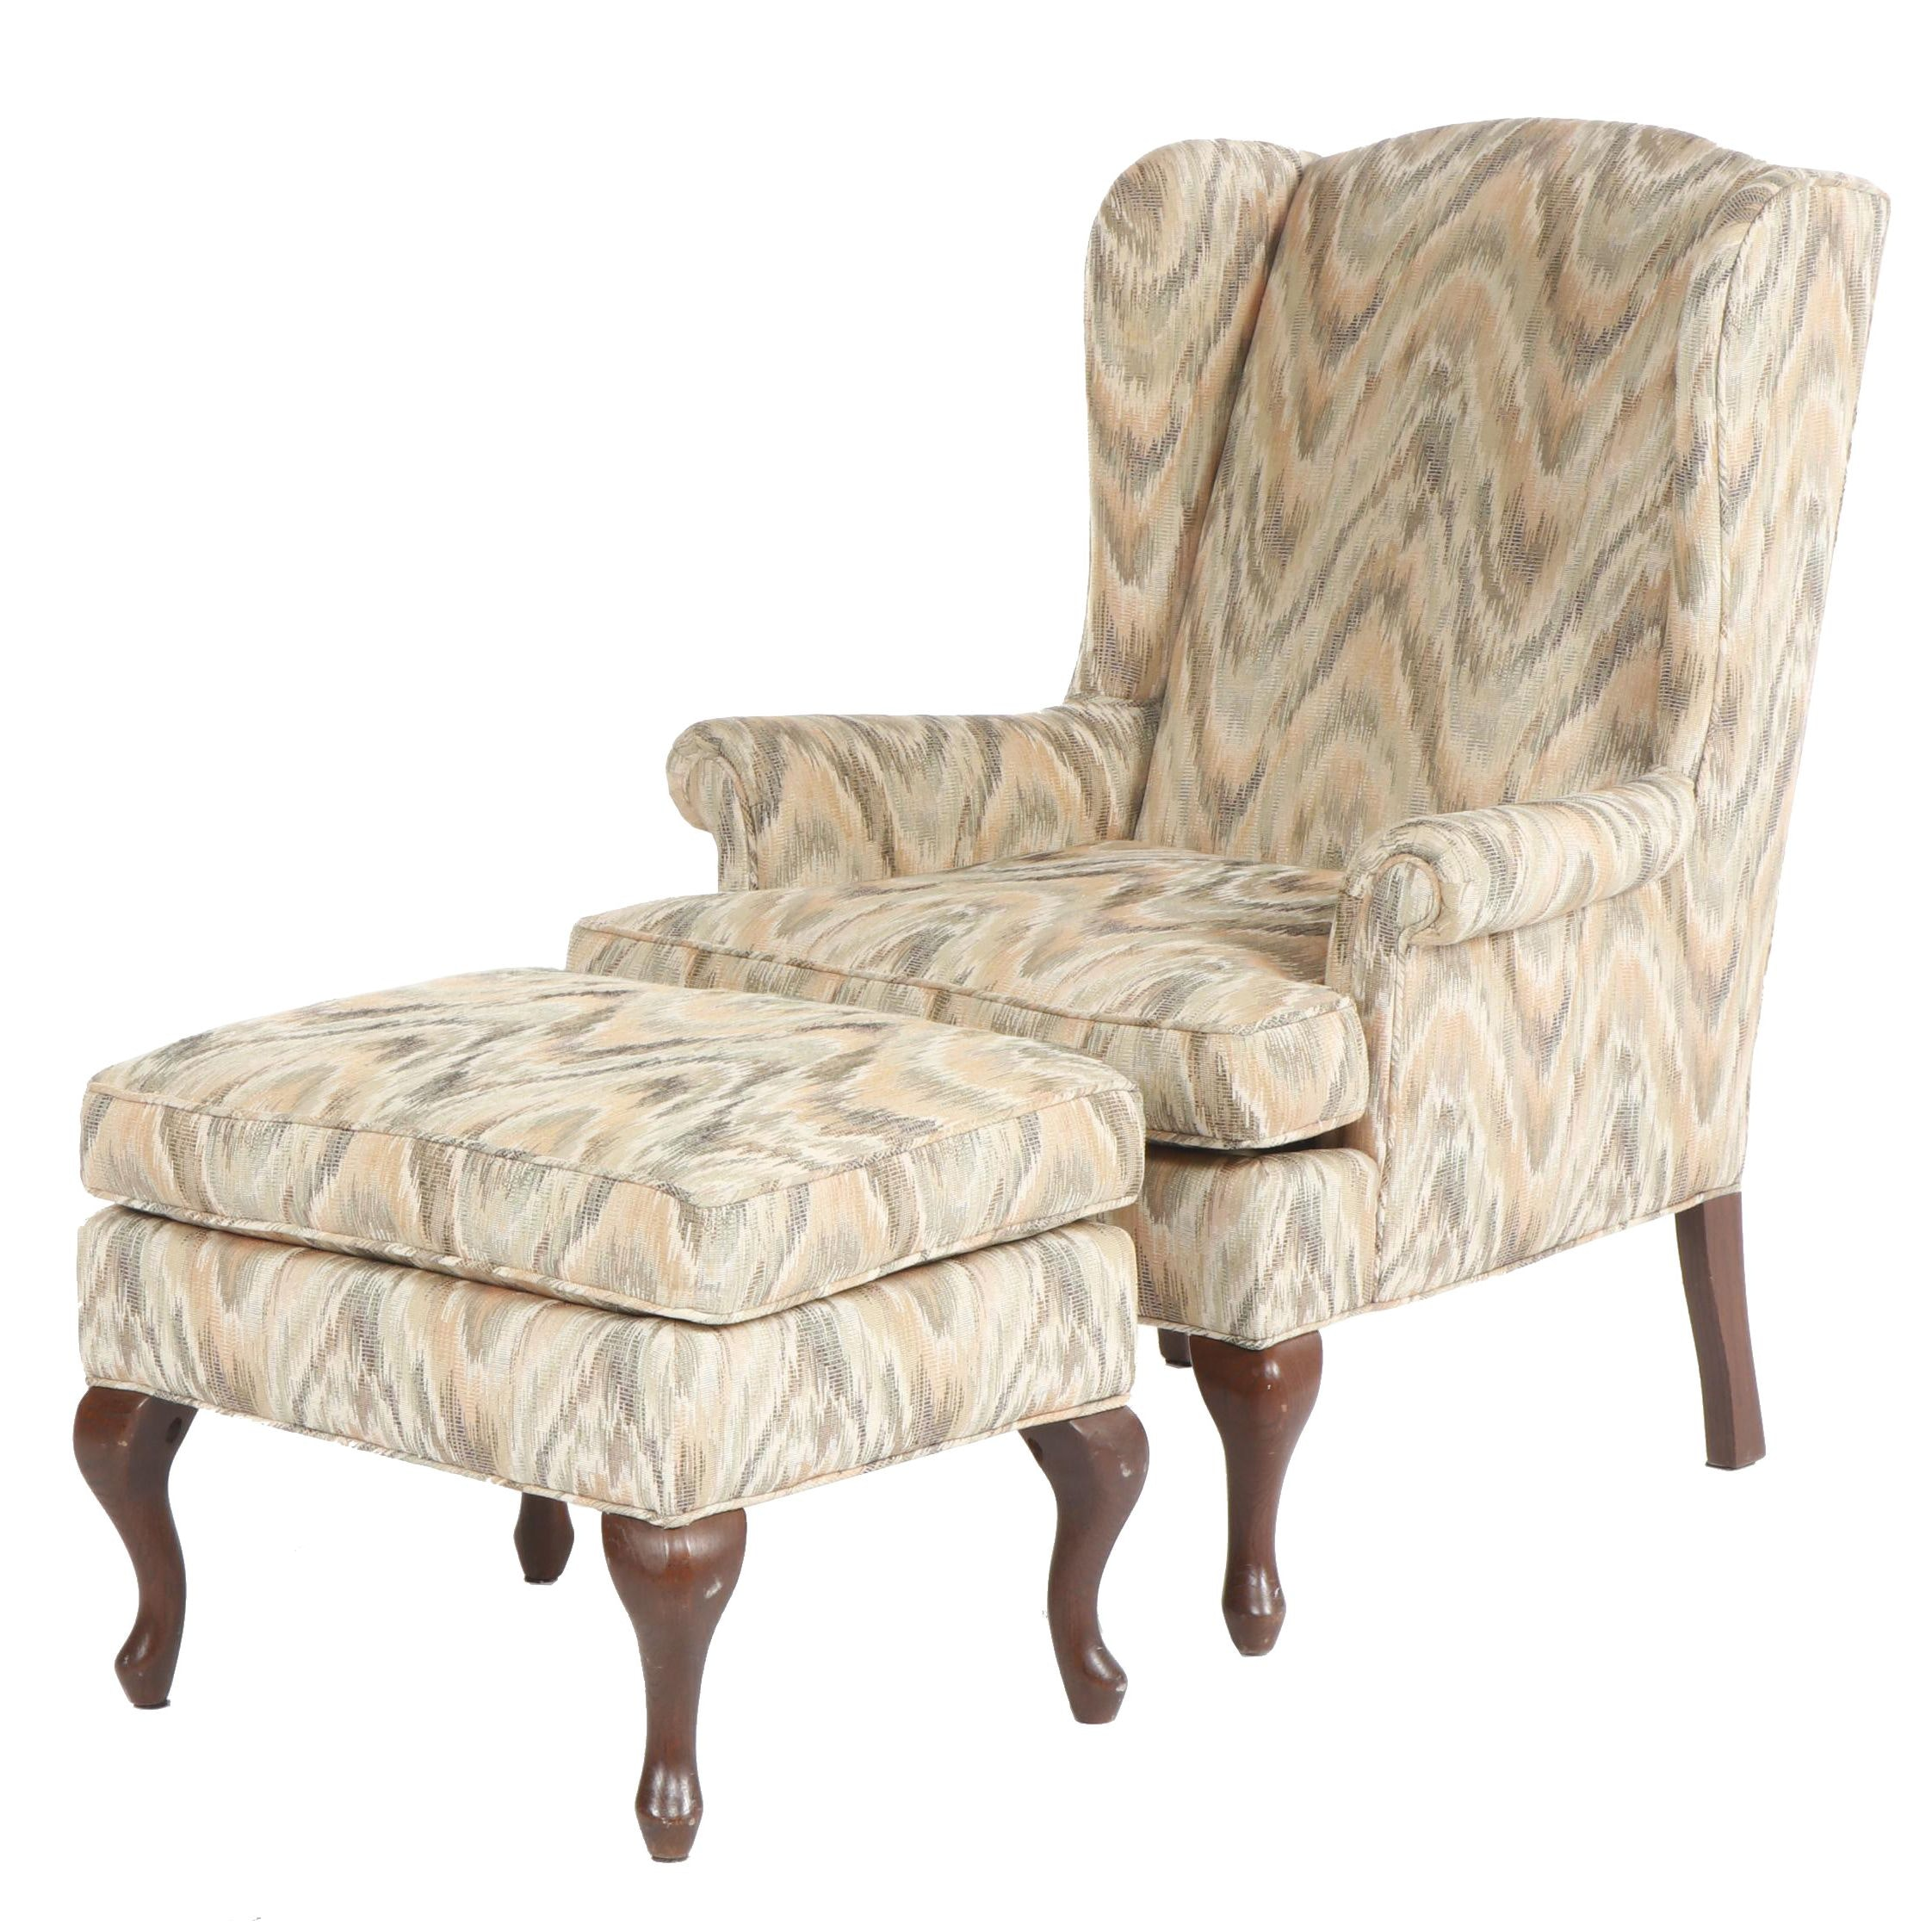 Queen Anne Style Upholstered Wingback Chair with Footstool